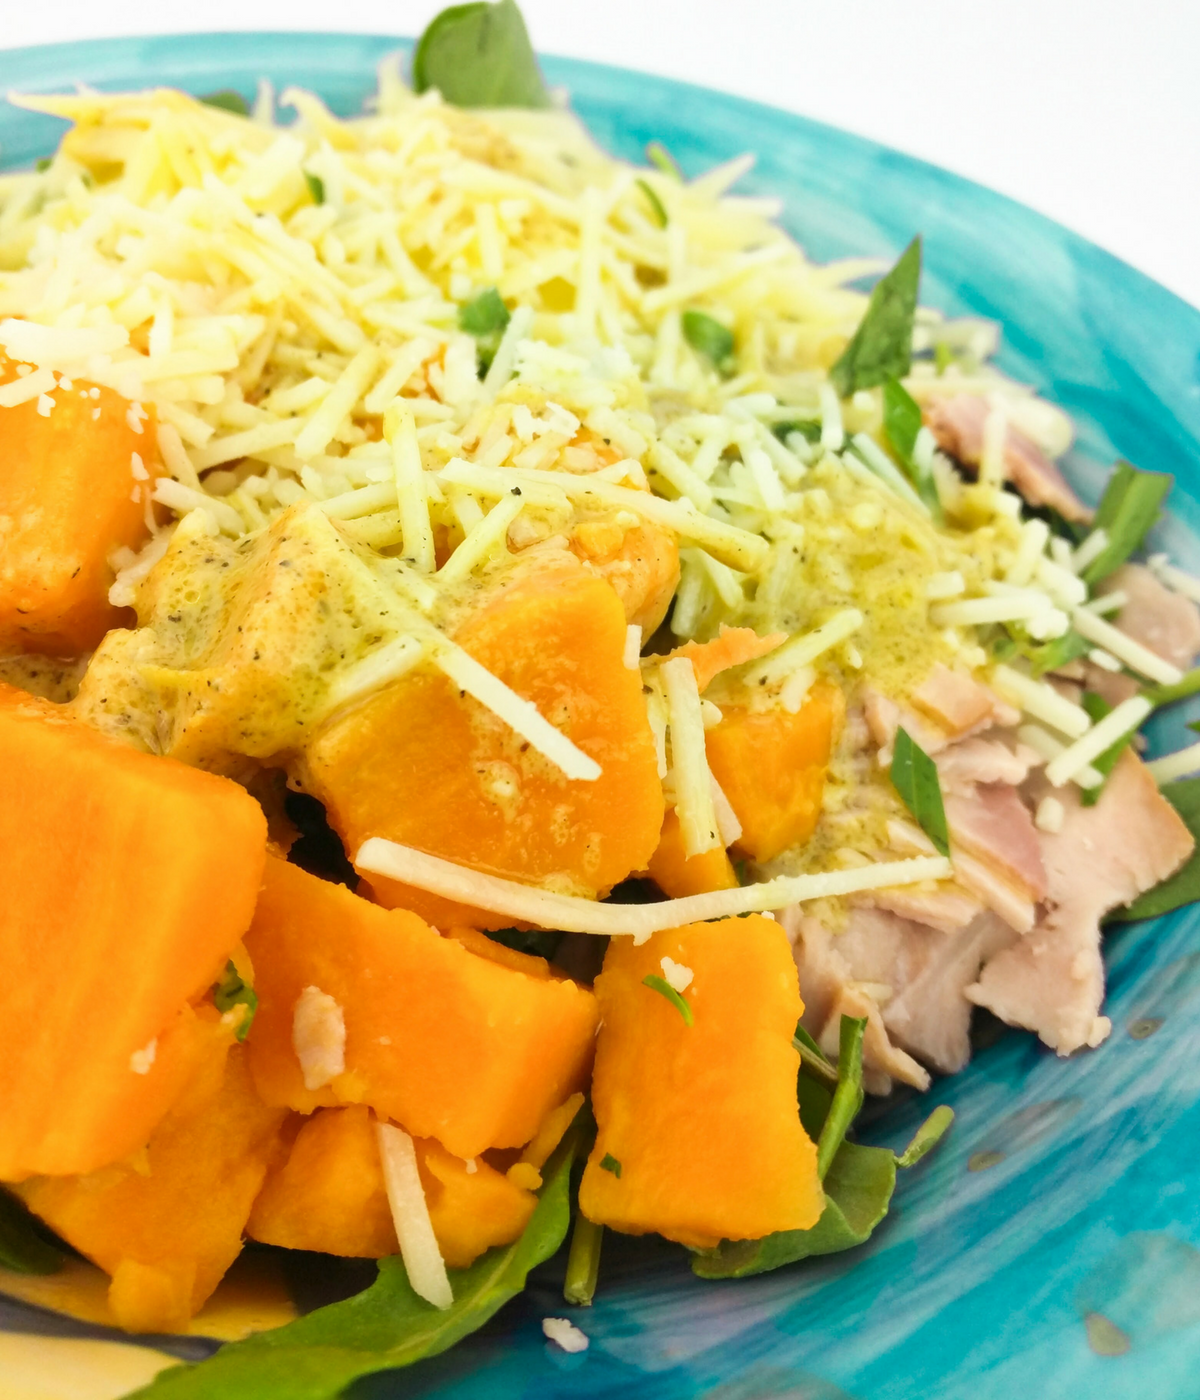 Top your salad with a delicious combination of cooked sweet potatoes, prosciutto di parma, real swiss cheese, and a spicy dijon vinaigrette--lectin free and Plant Paradox approved!